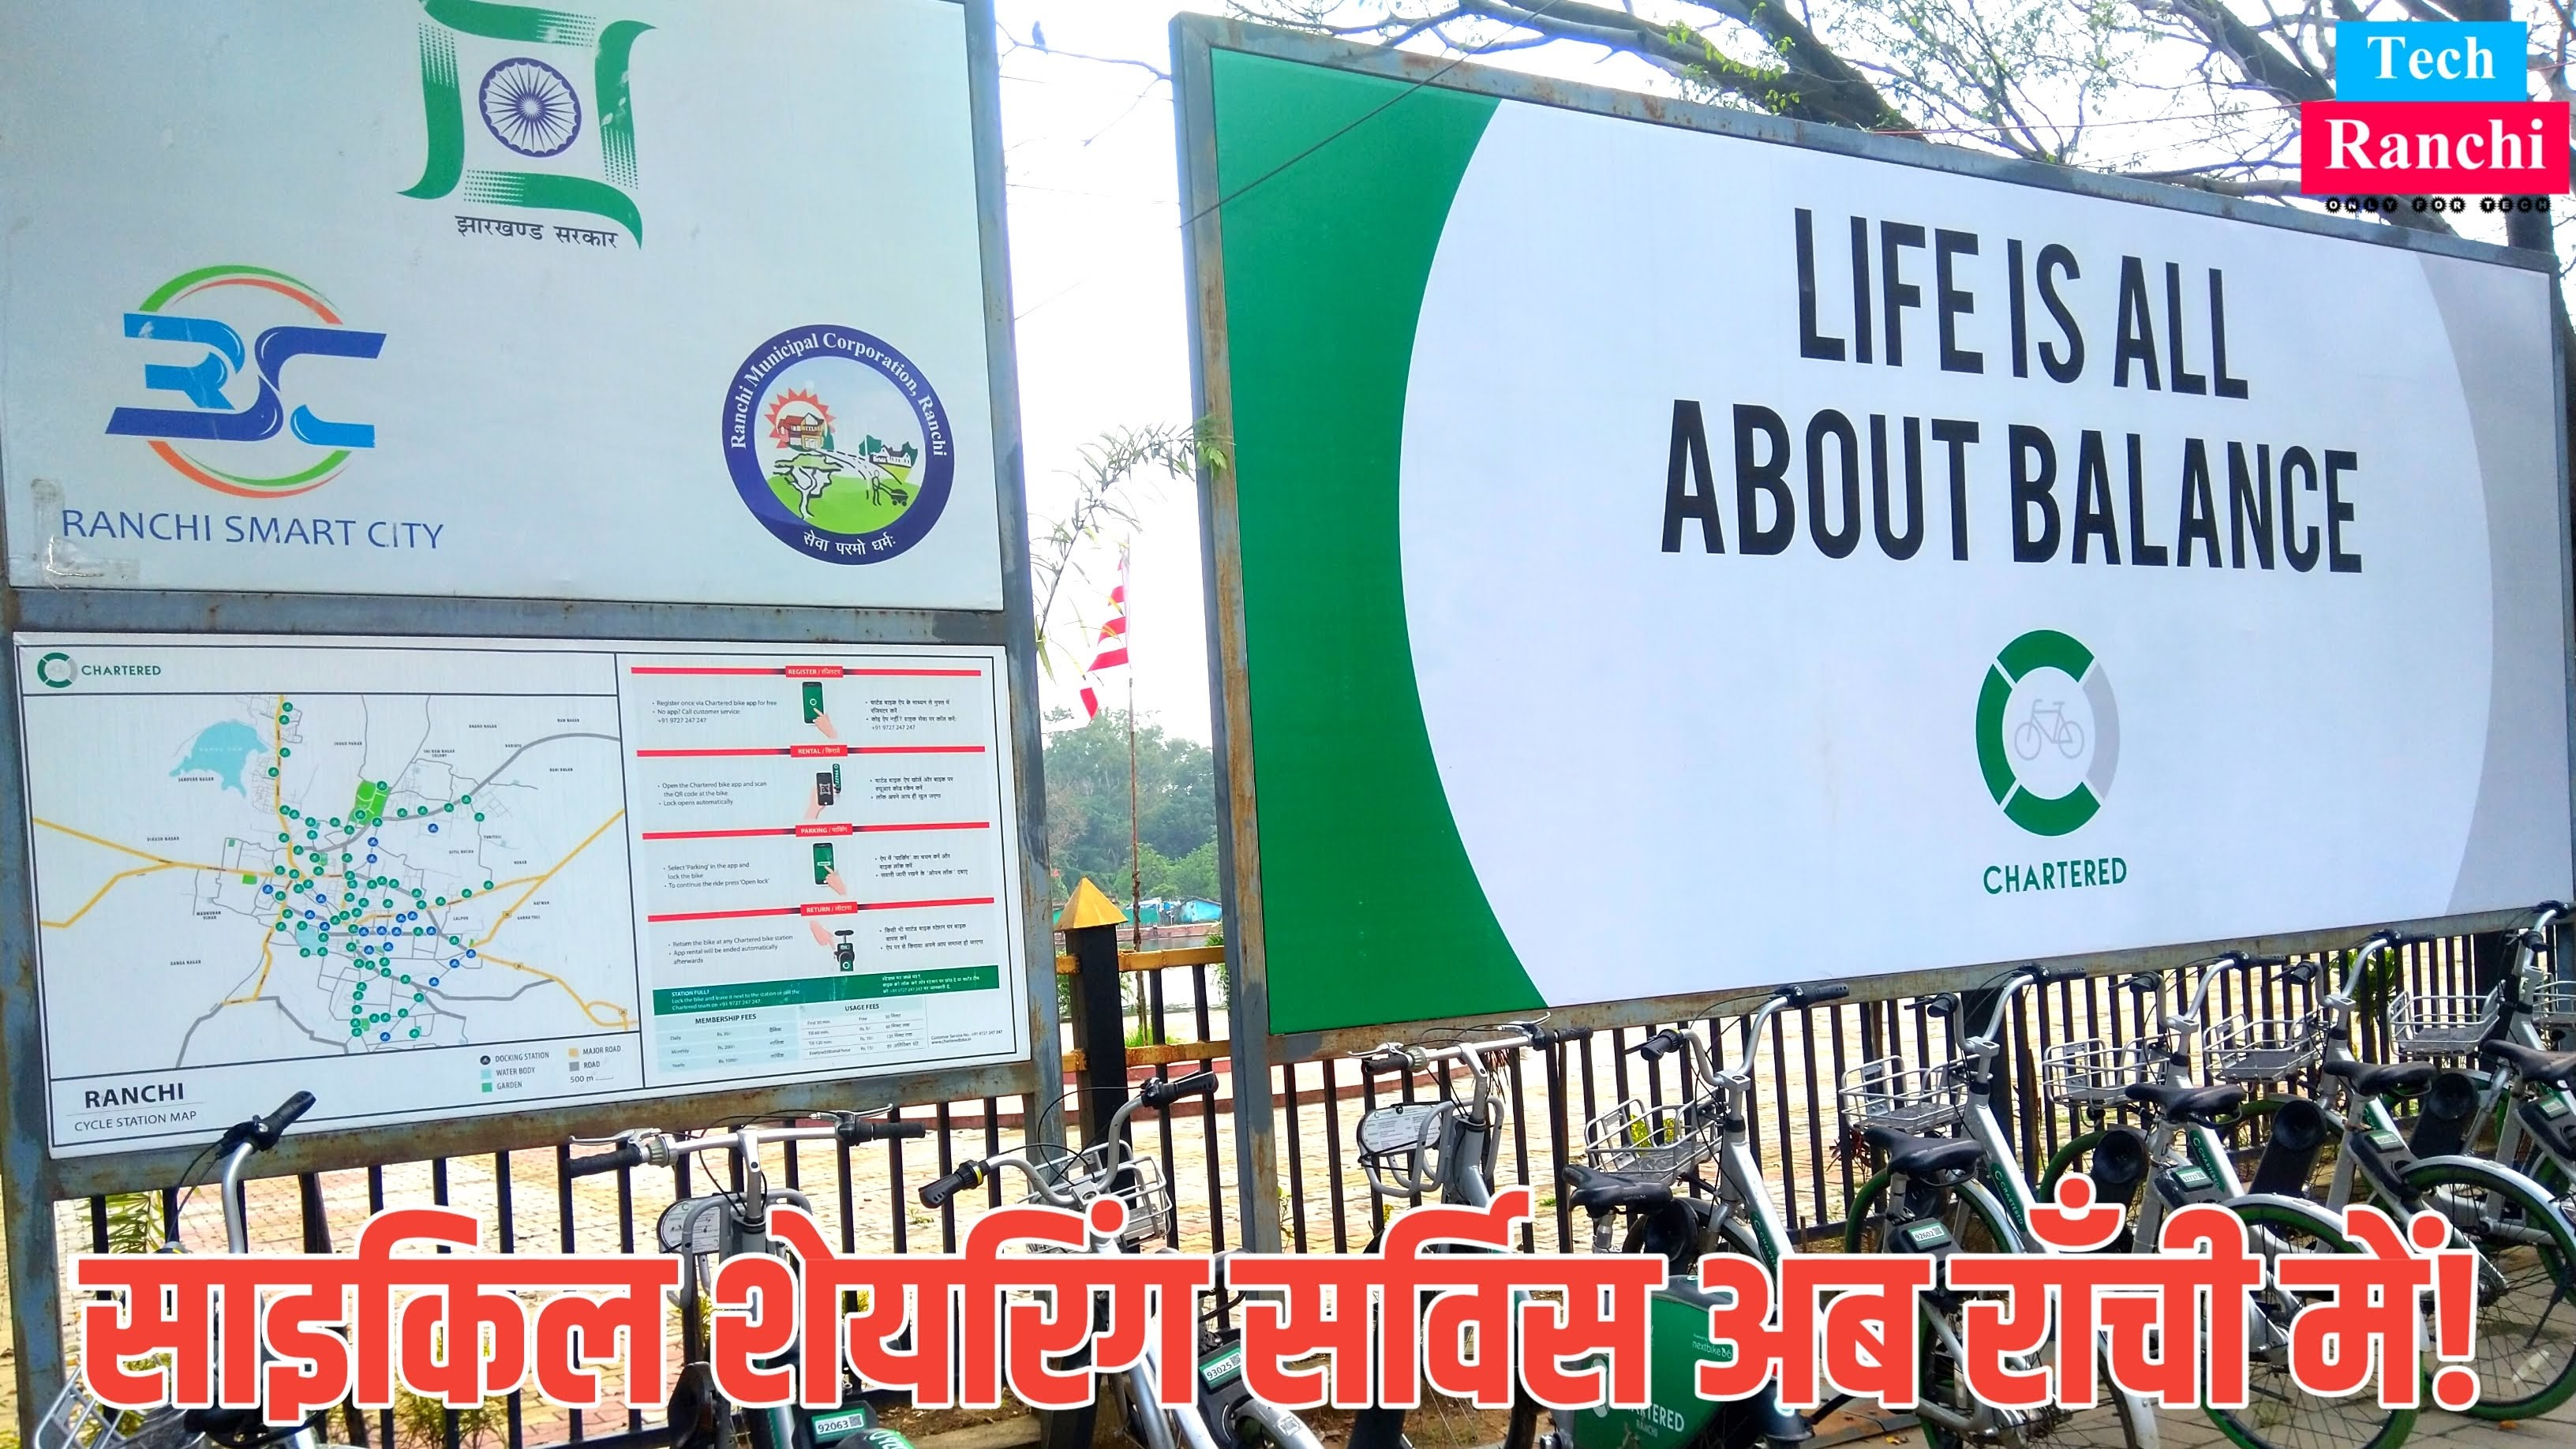 Cycle Sharering Service in RANCHI Android/iPhone Apps